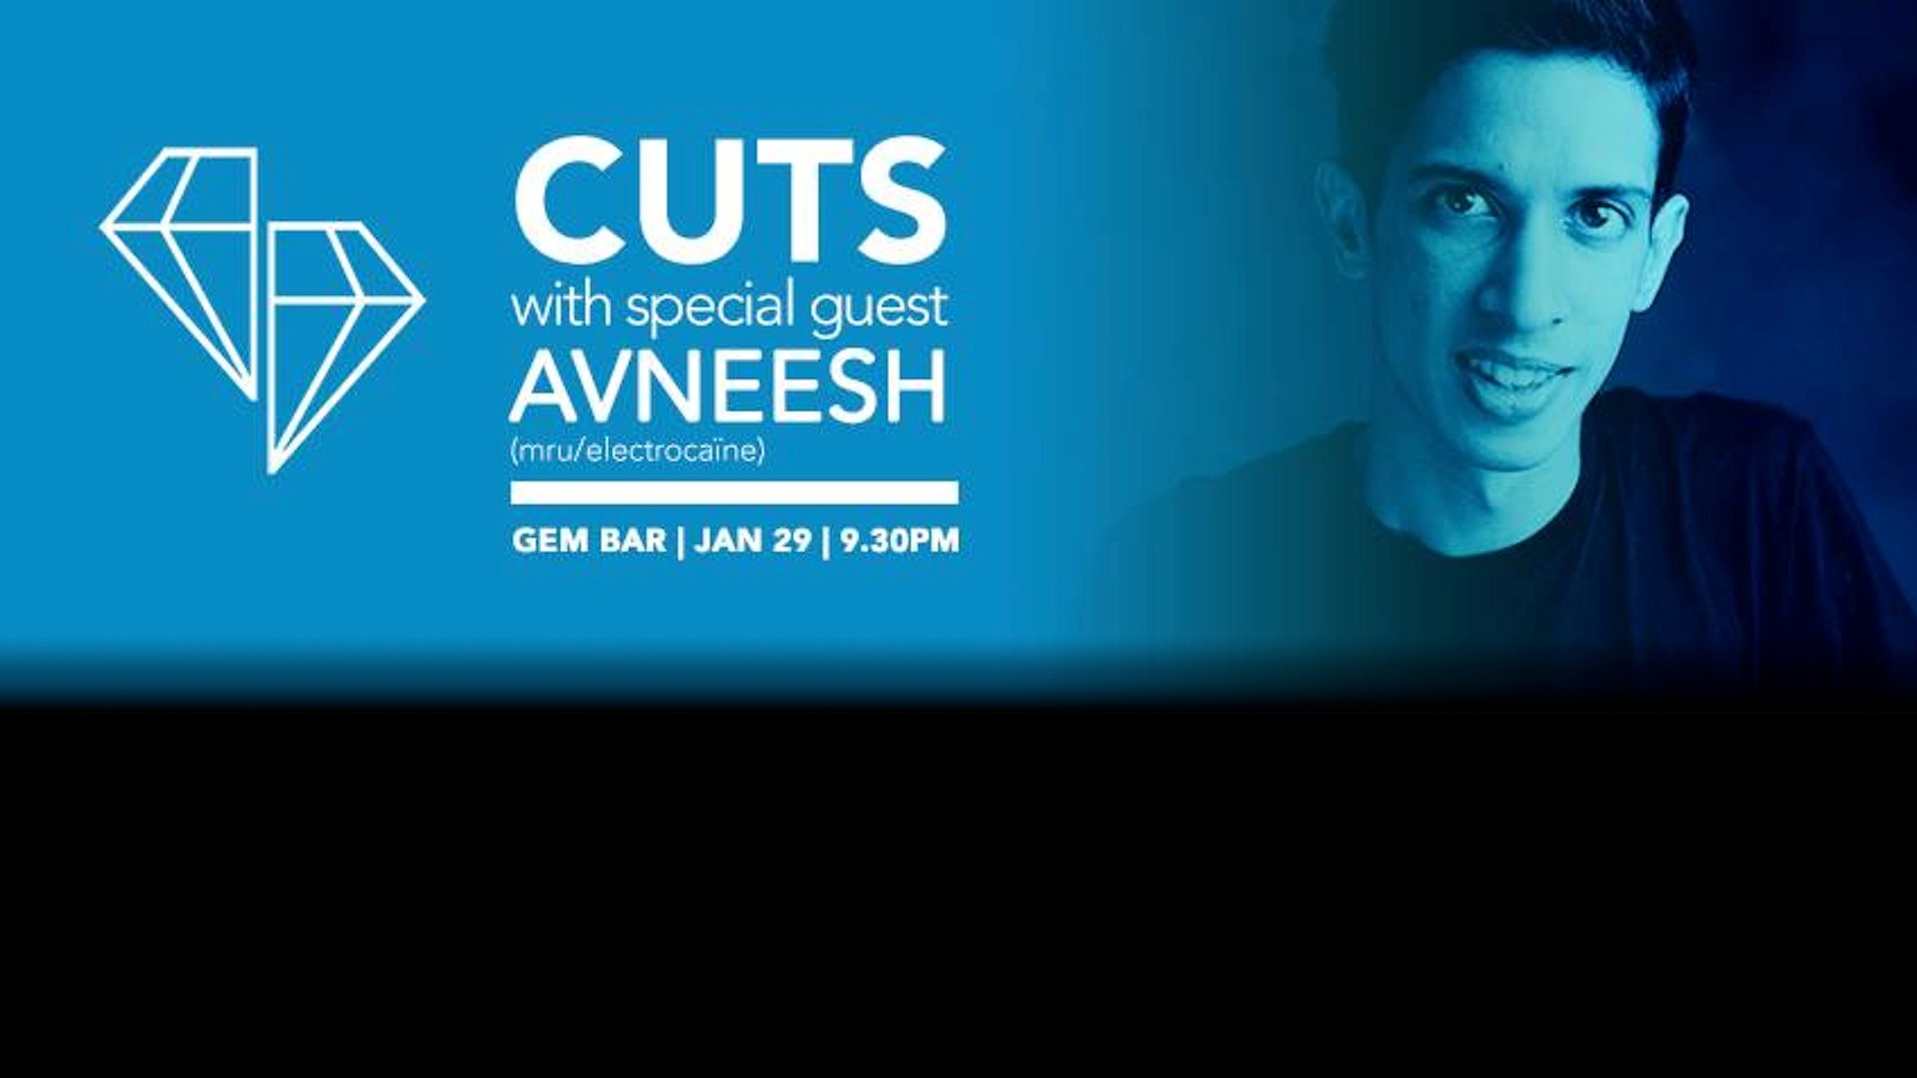 CUTS with special guest Avneesh